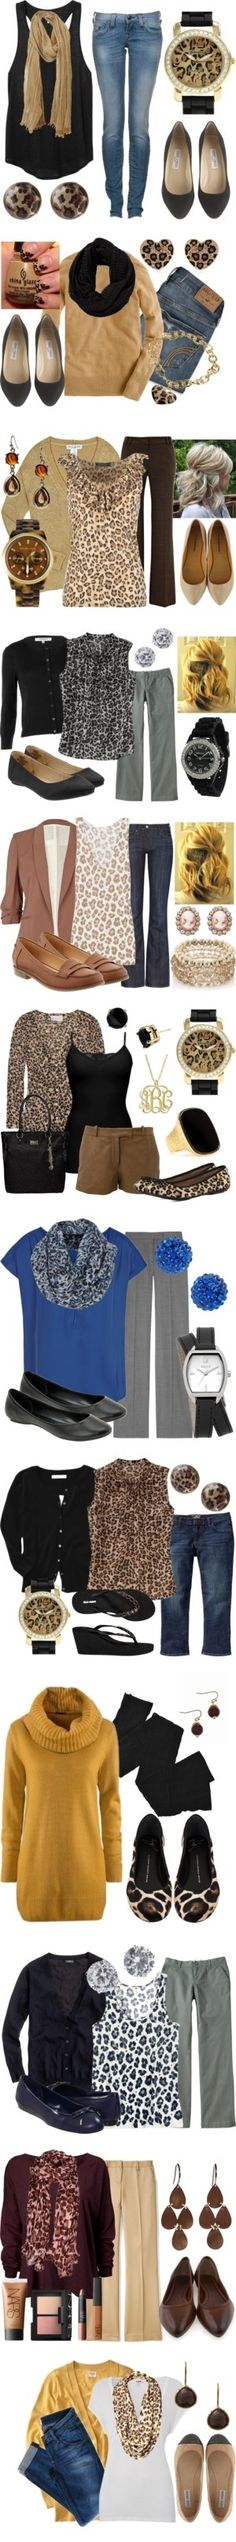 I've been meaning to learn how to incorporate animal print into my wardrobe...